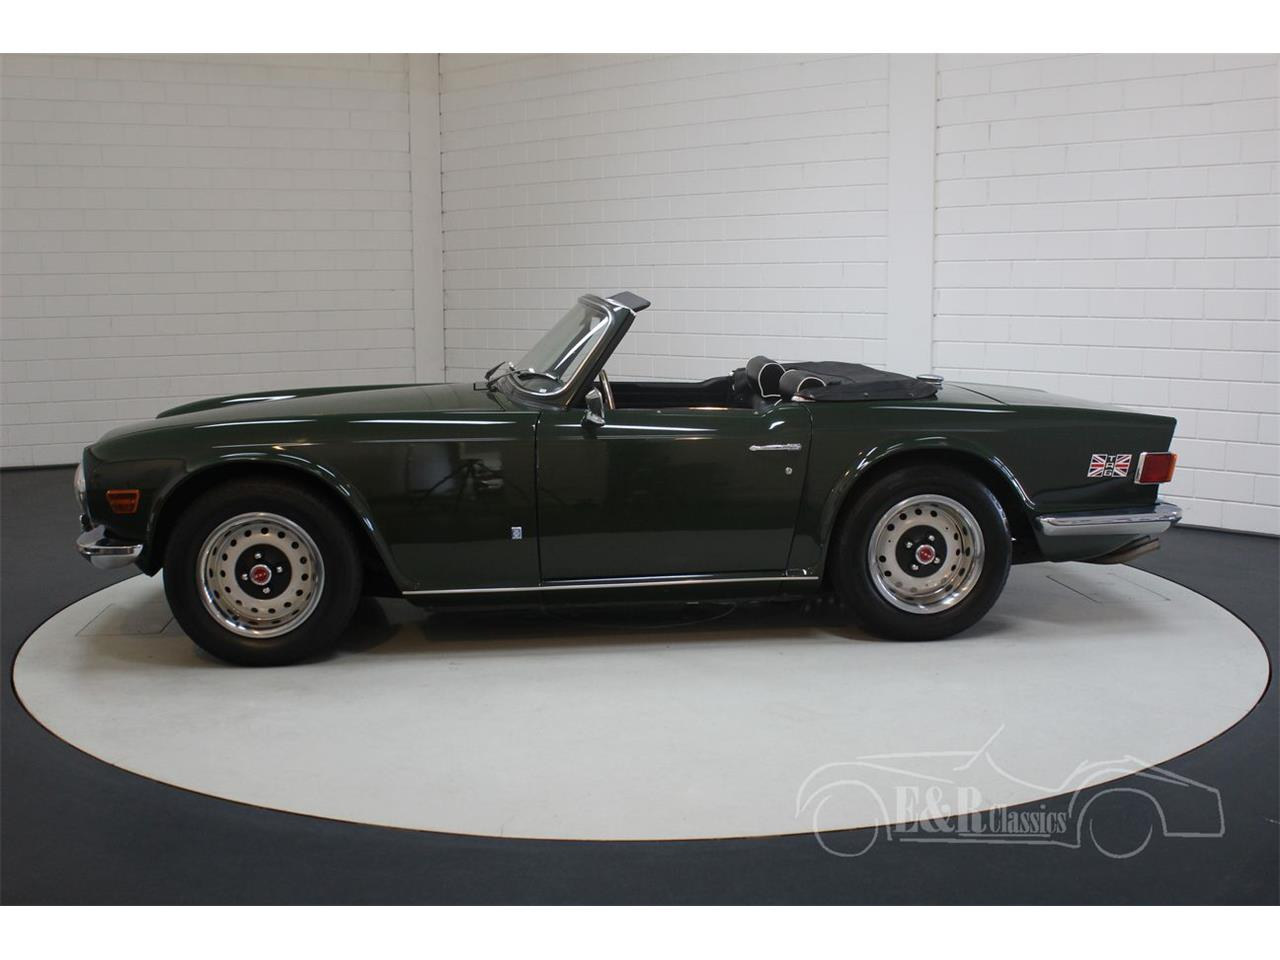 Large Picture of Classic '69 Triumph TR6 located in Waalwijk Noord Brabant - $33,700.00 Offered by E & R Classics - PWOE